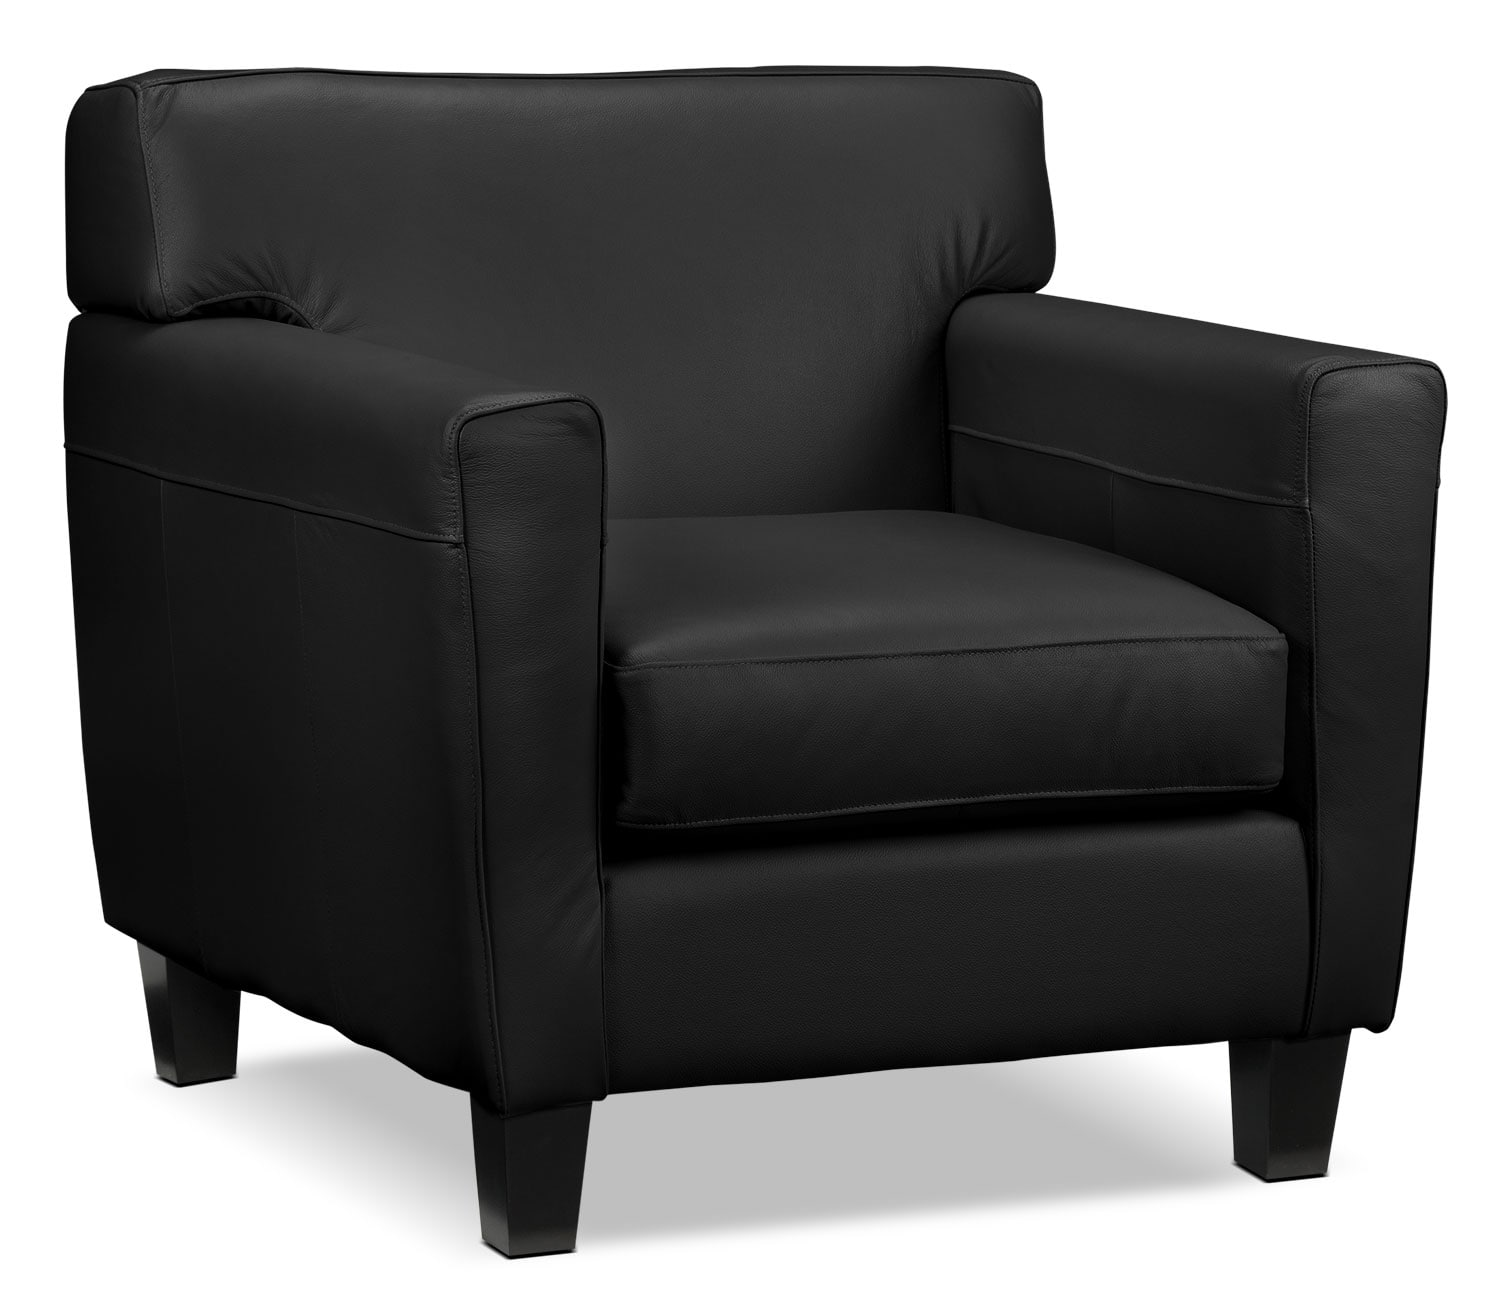 Whitney Chair - Black